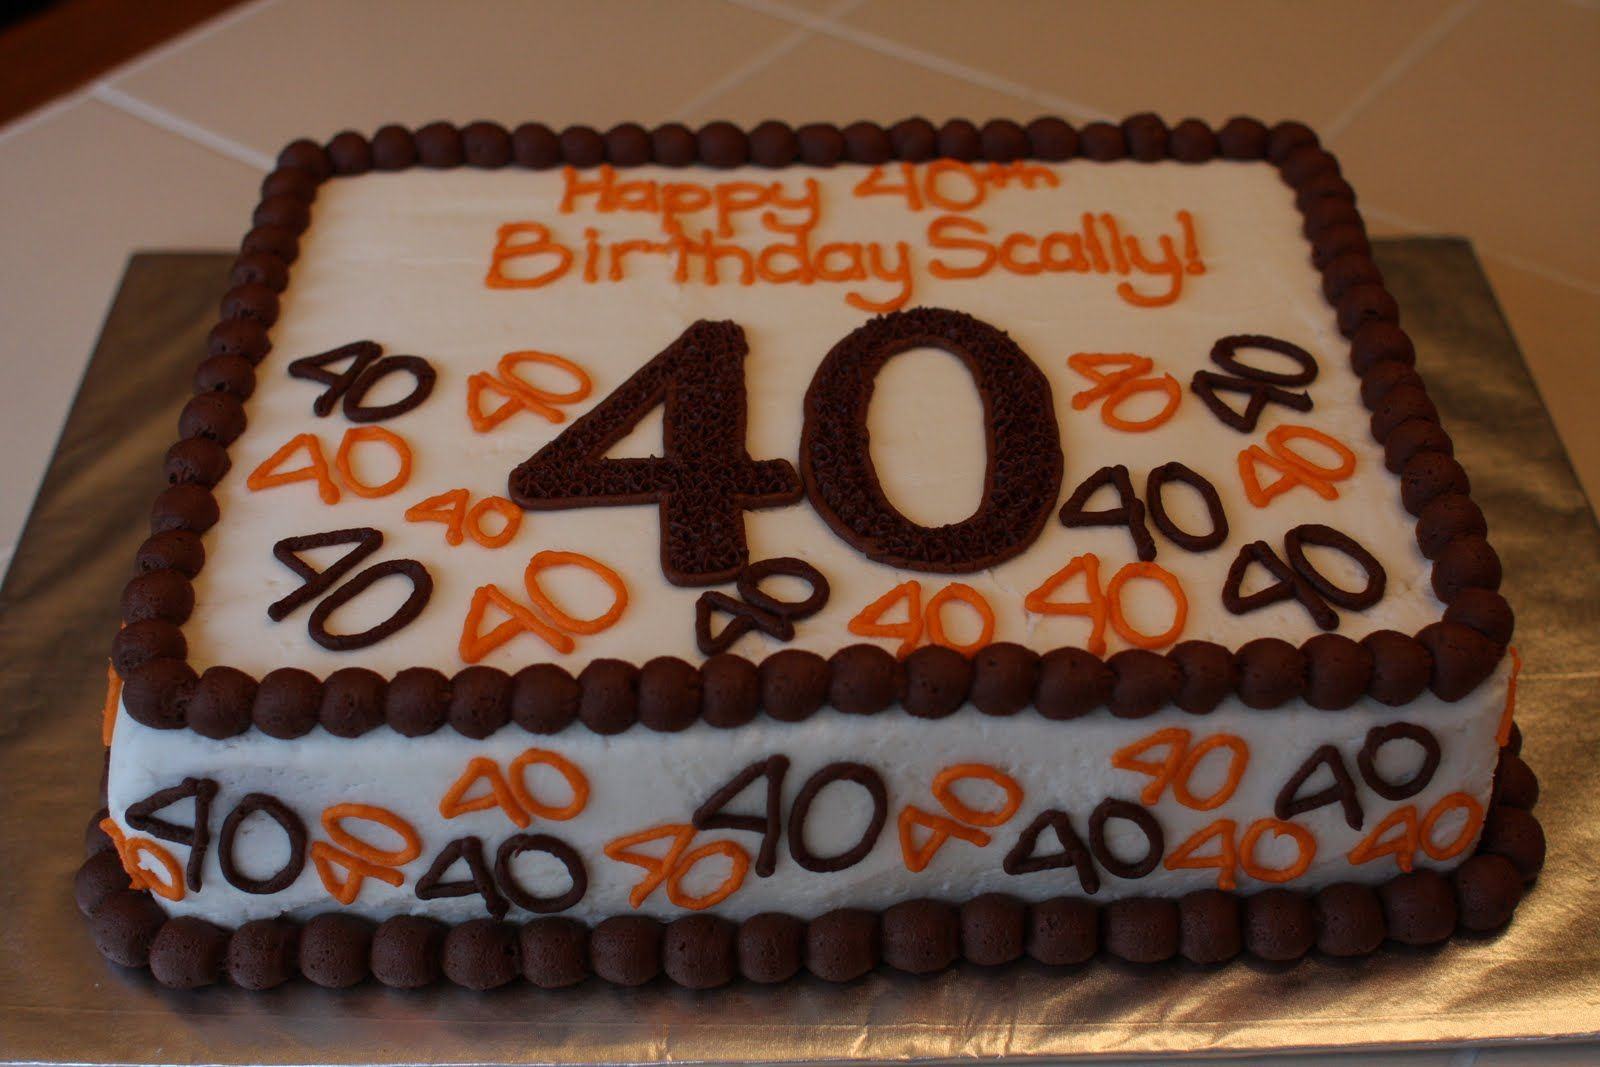 40th birthday cake ideas for men Google Search Let them eat